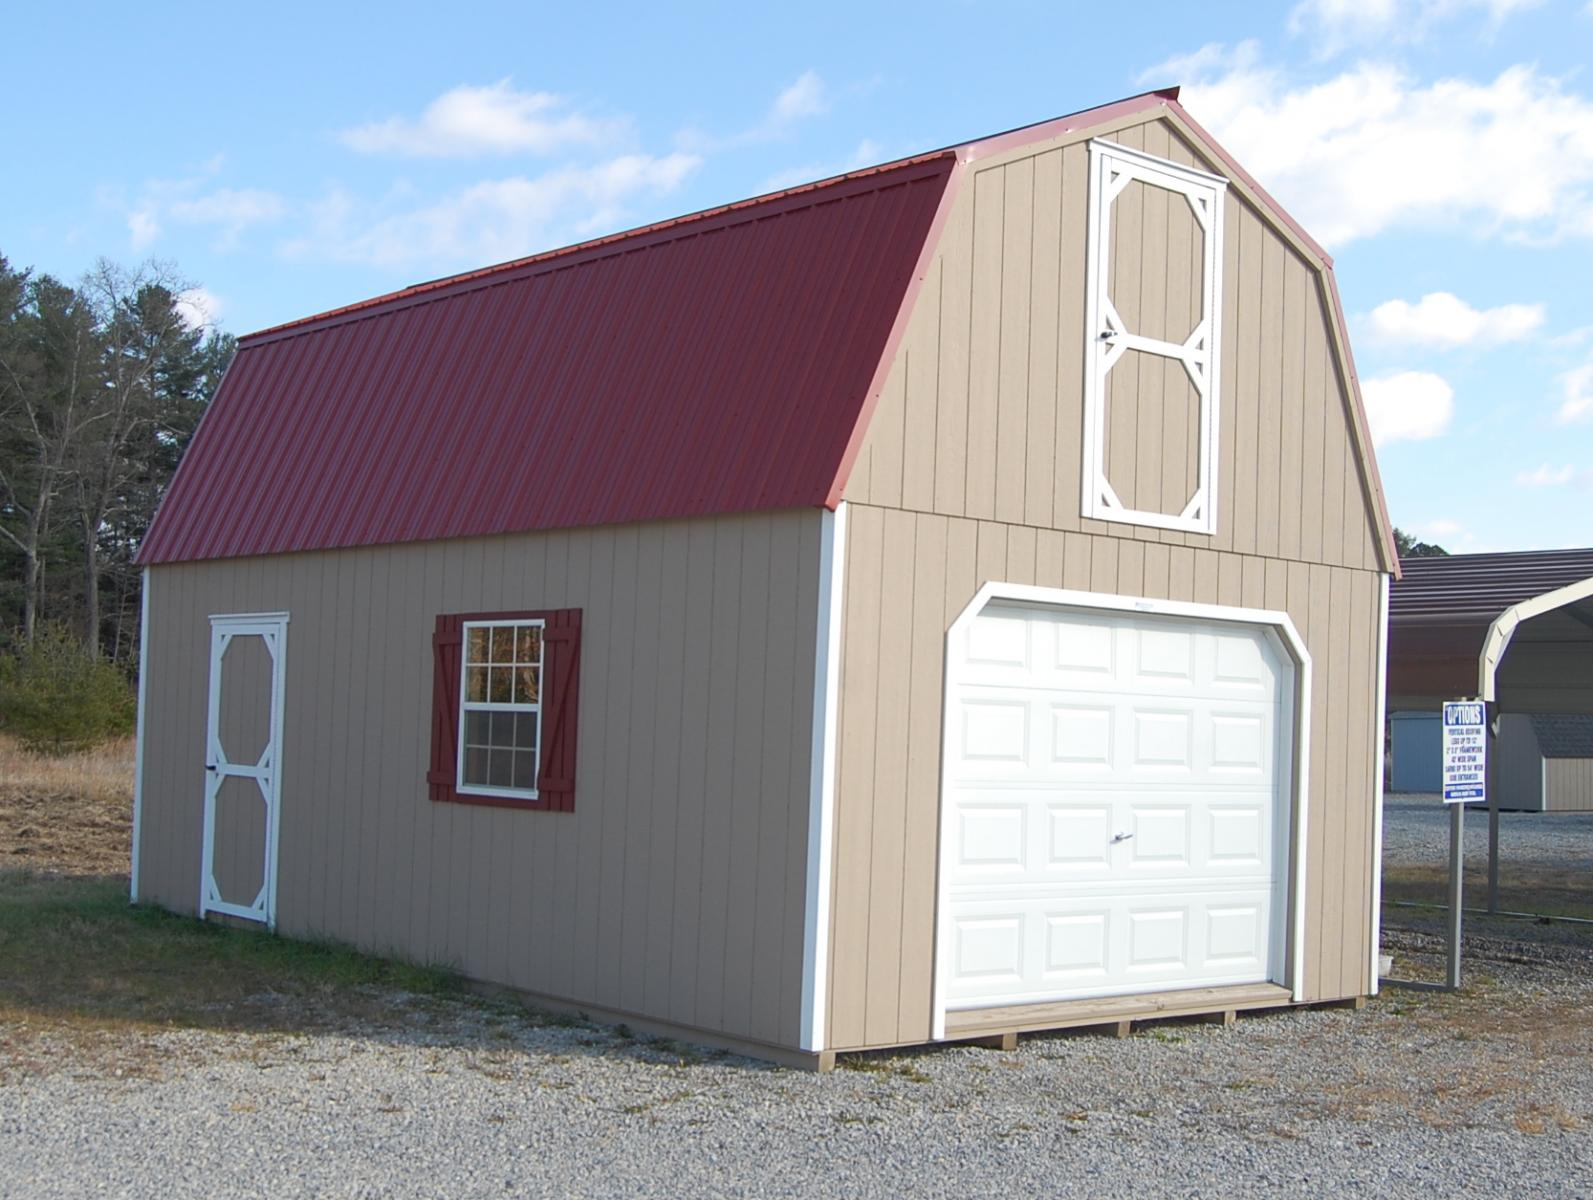 14x24 2 story gambrel barn sg30176 pine creek structures for Gambrel barn prices